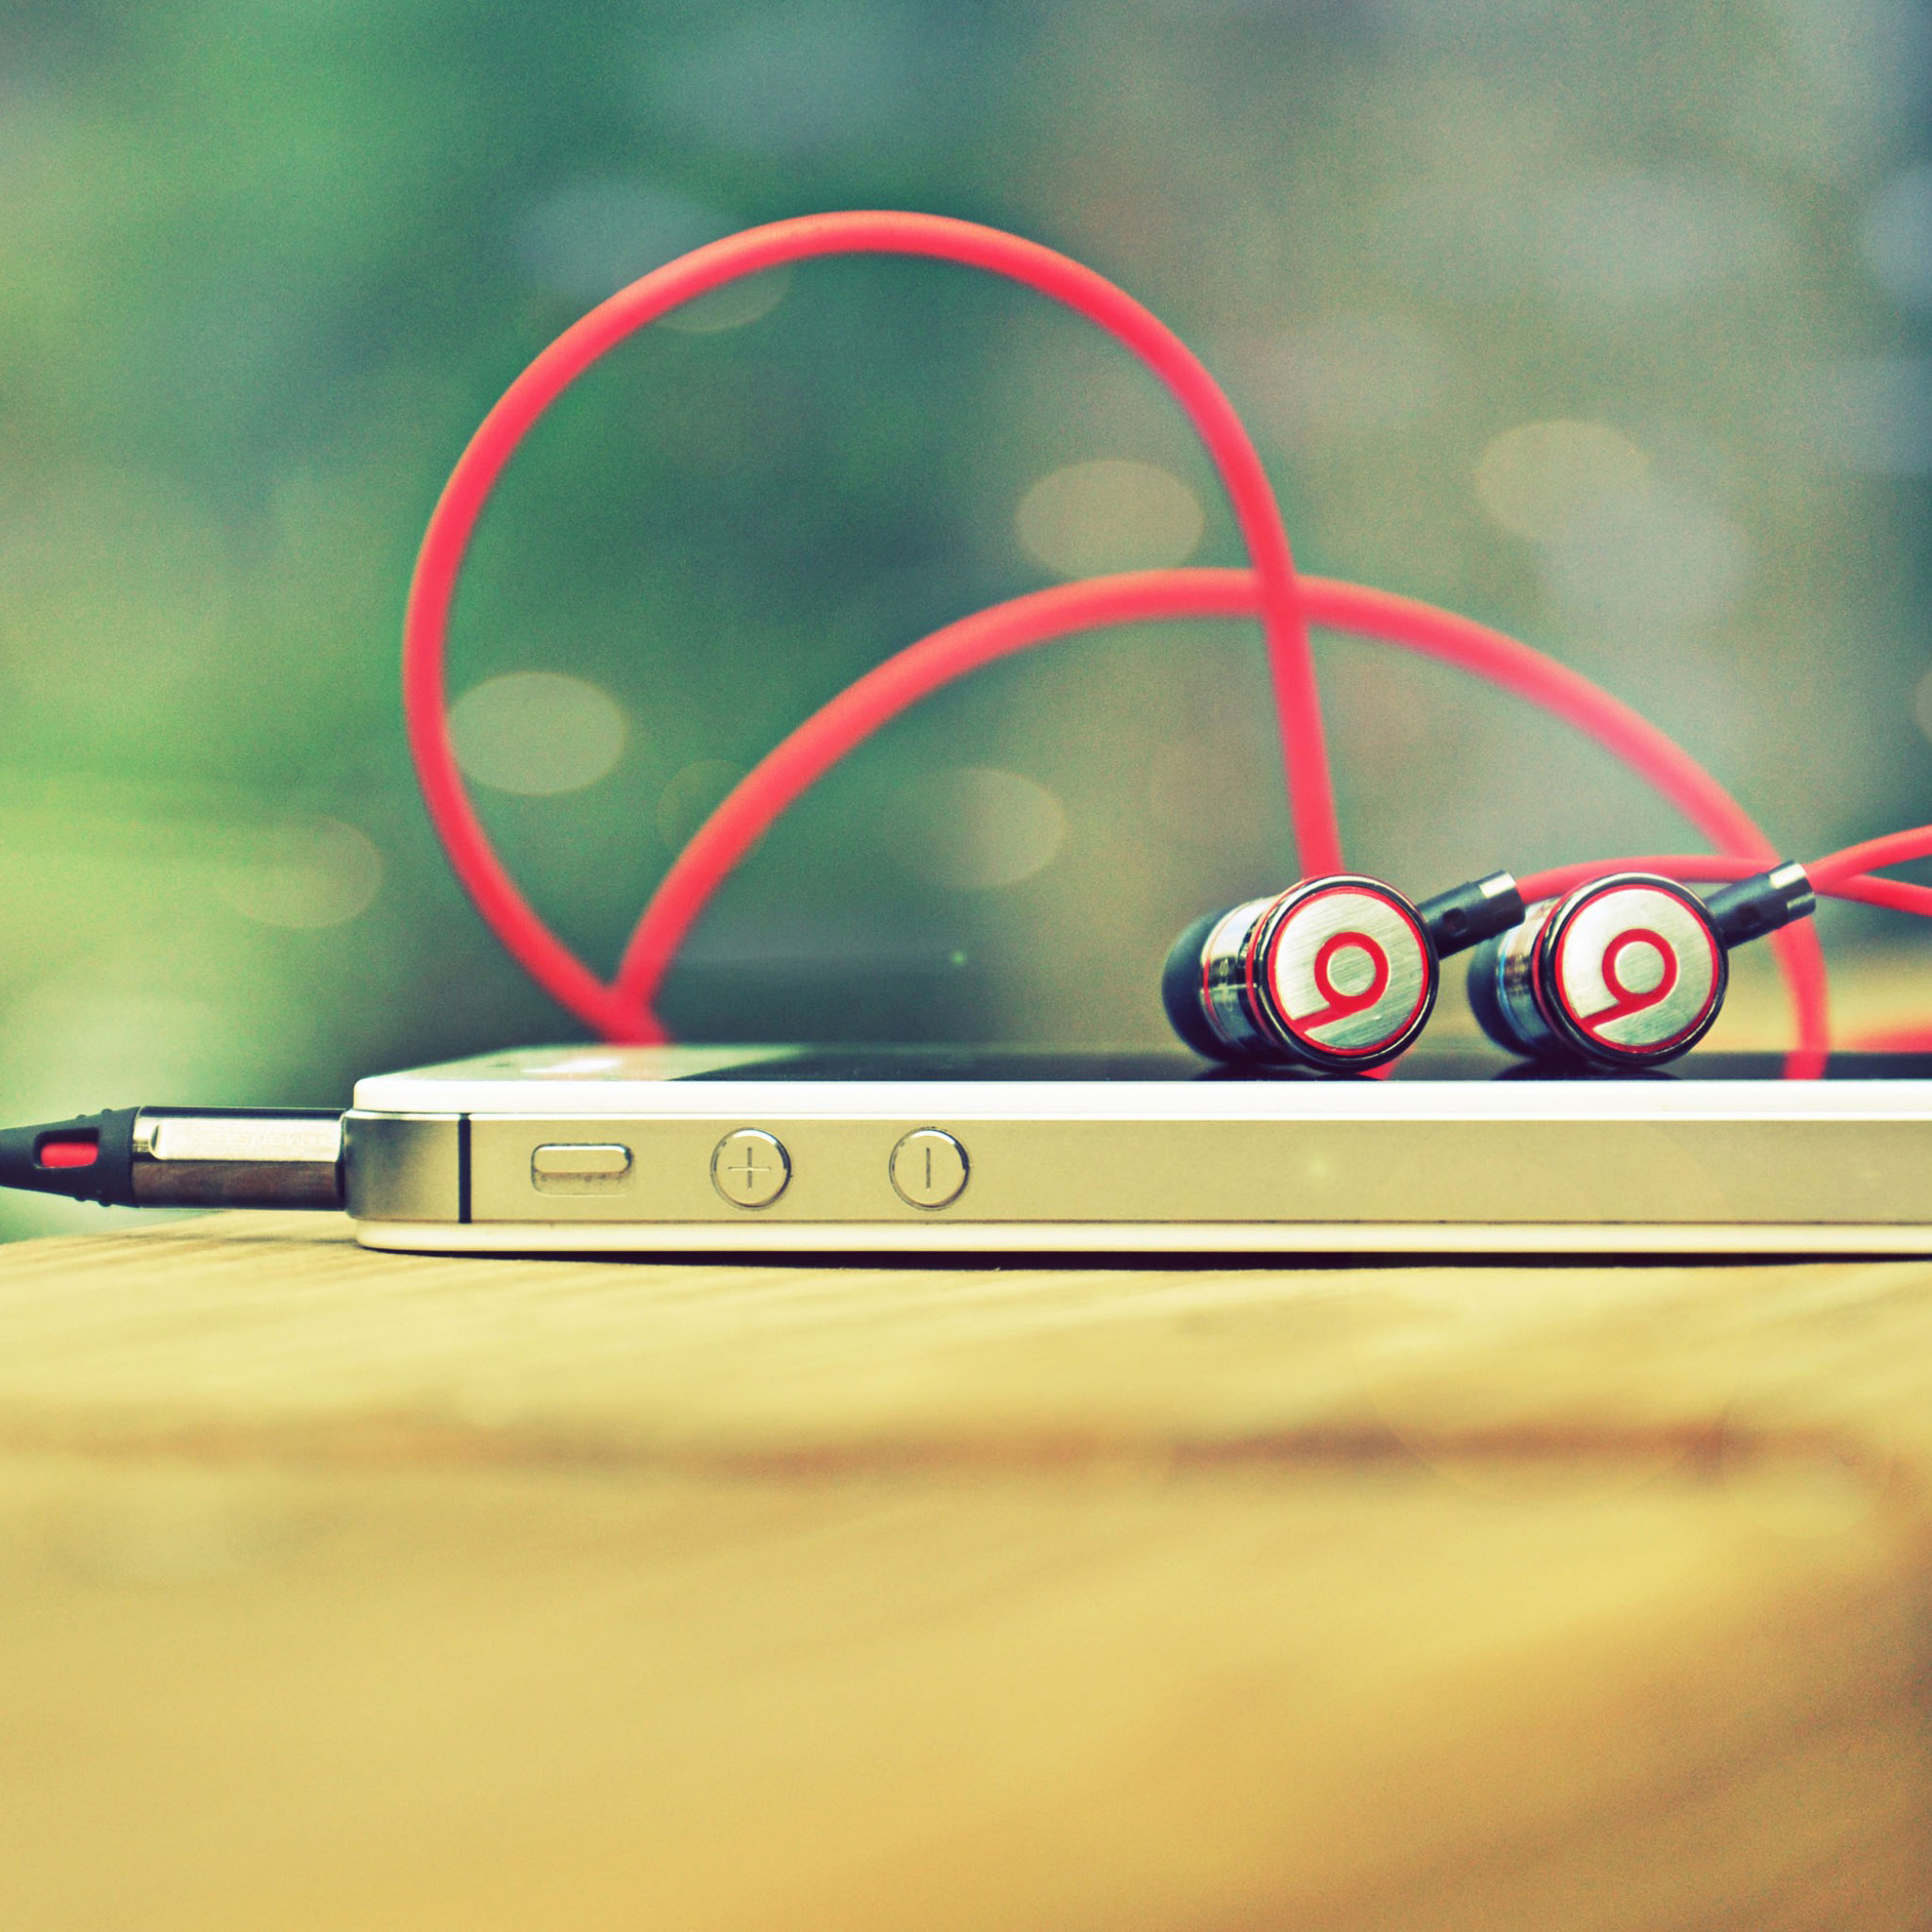 Headphones Beats 3Wallpapers ipad Retina Headphones Beats   iPad Retina